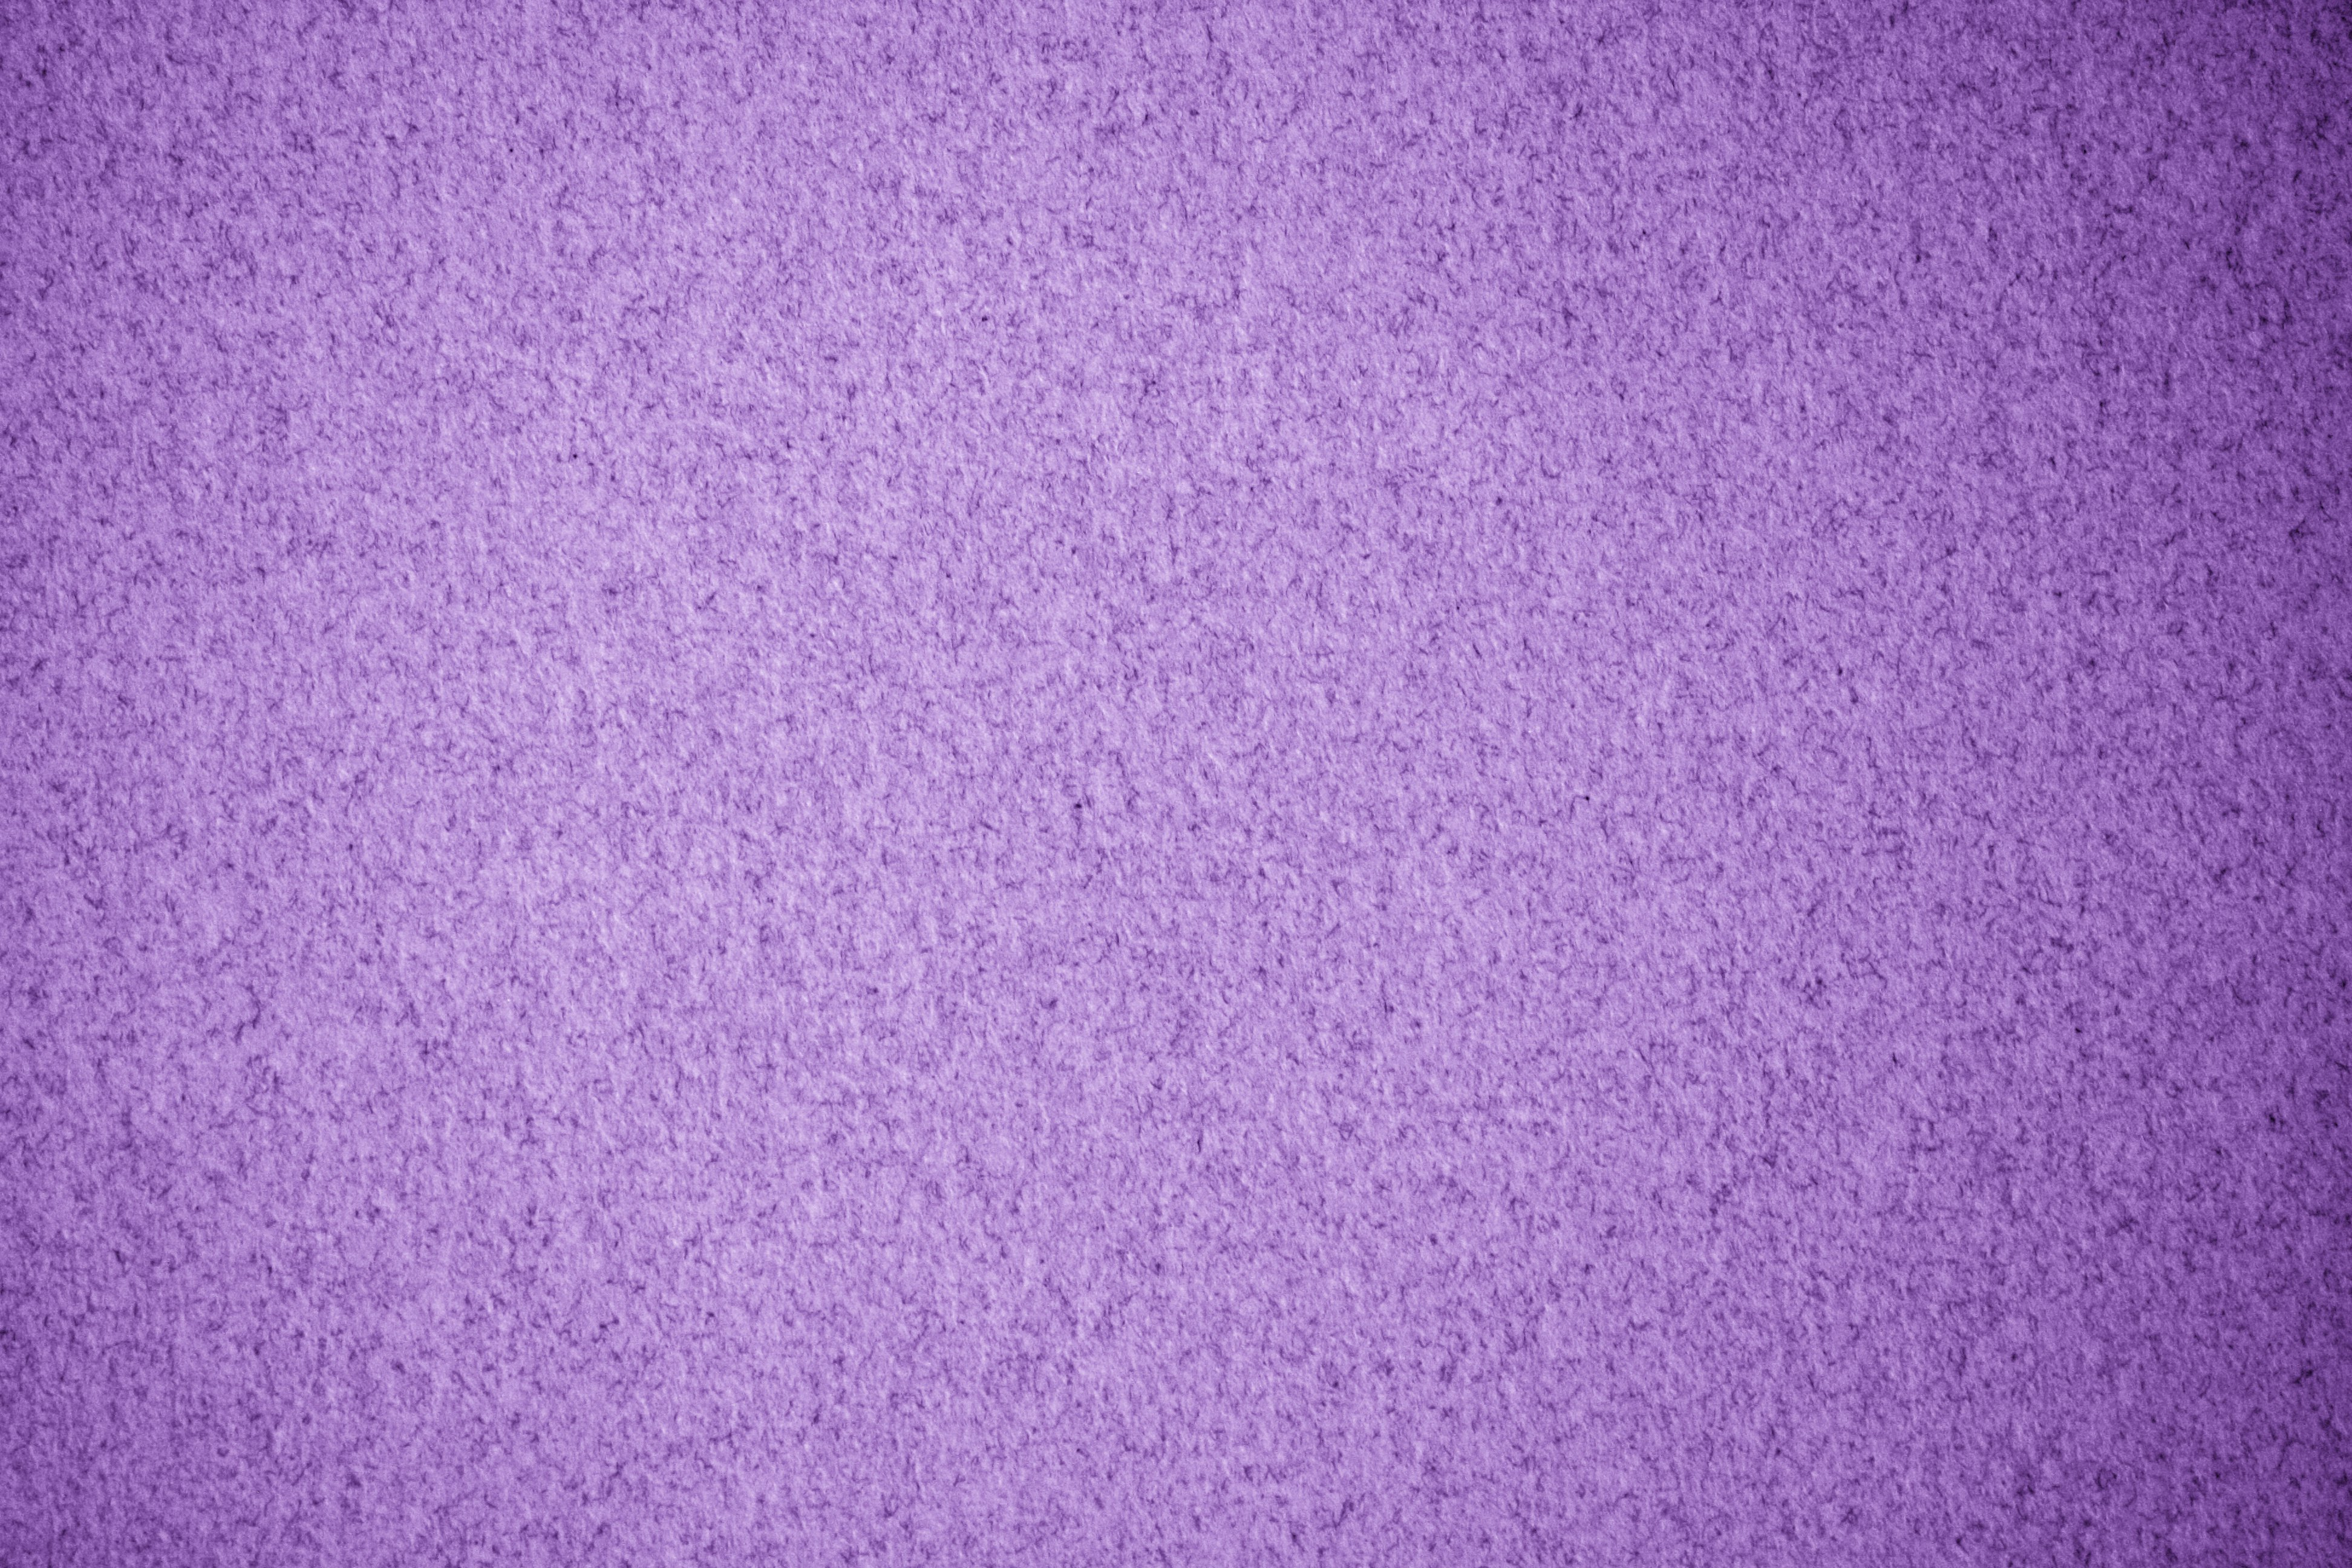 color purple paper The color purple paper - sociology - free download as word doc (doc / docx), pdf file (pdf), text file (txt) or read online for free scribd is the world's largest social reading and publishing site.